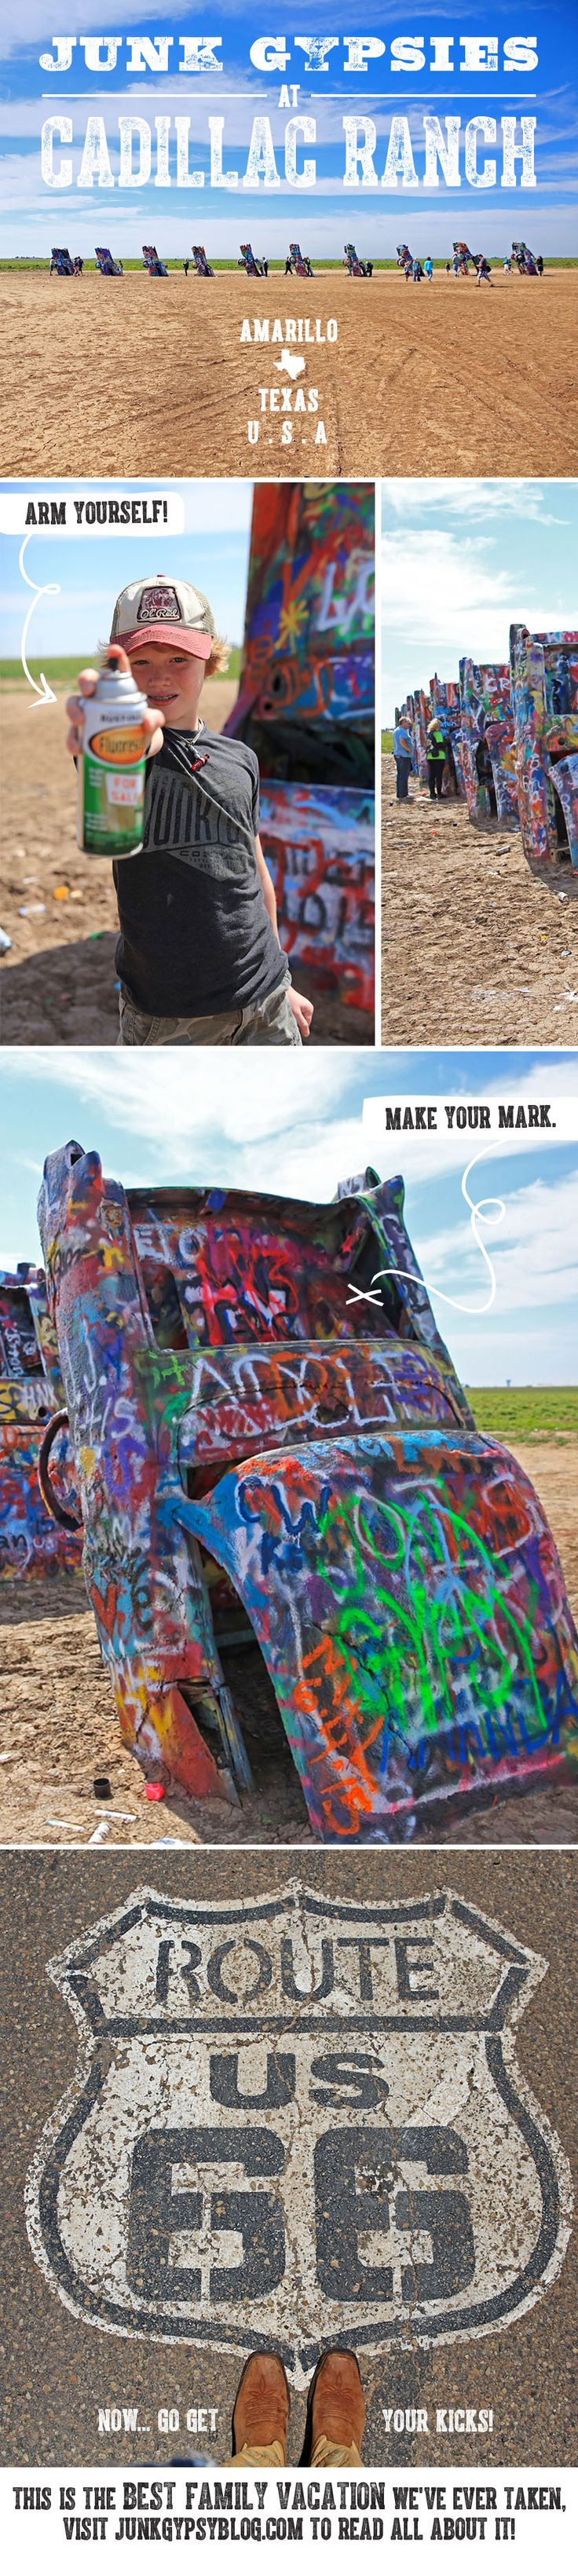 our ROUTE 66 road trip to Cadillac Ranch! {junk gypsy co}